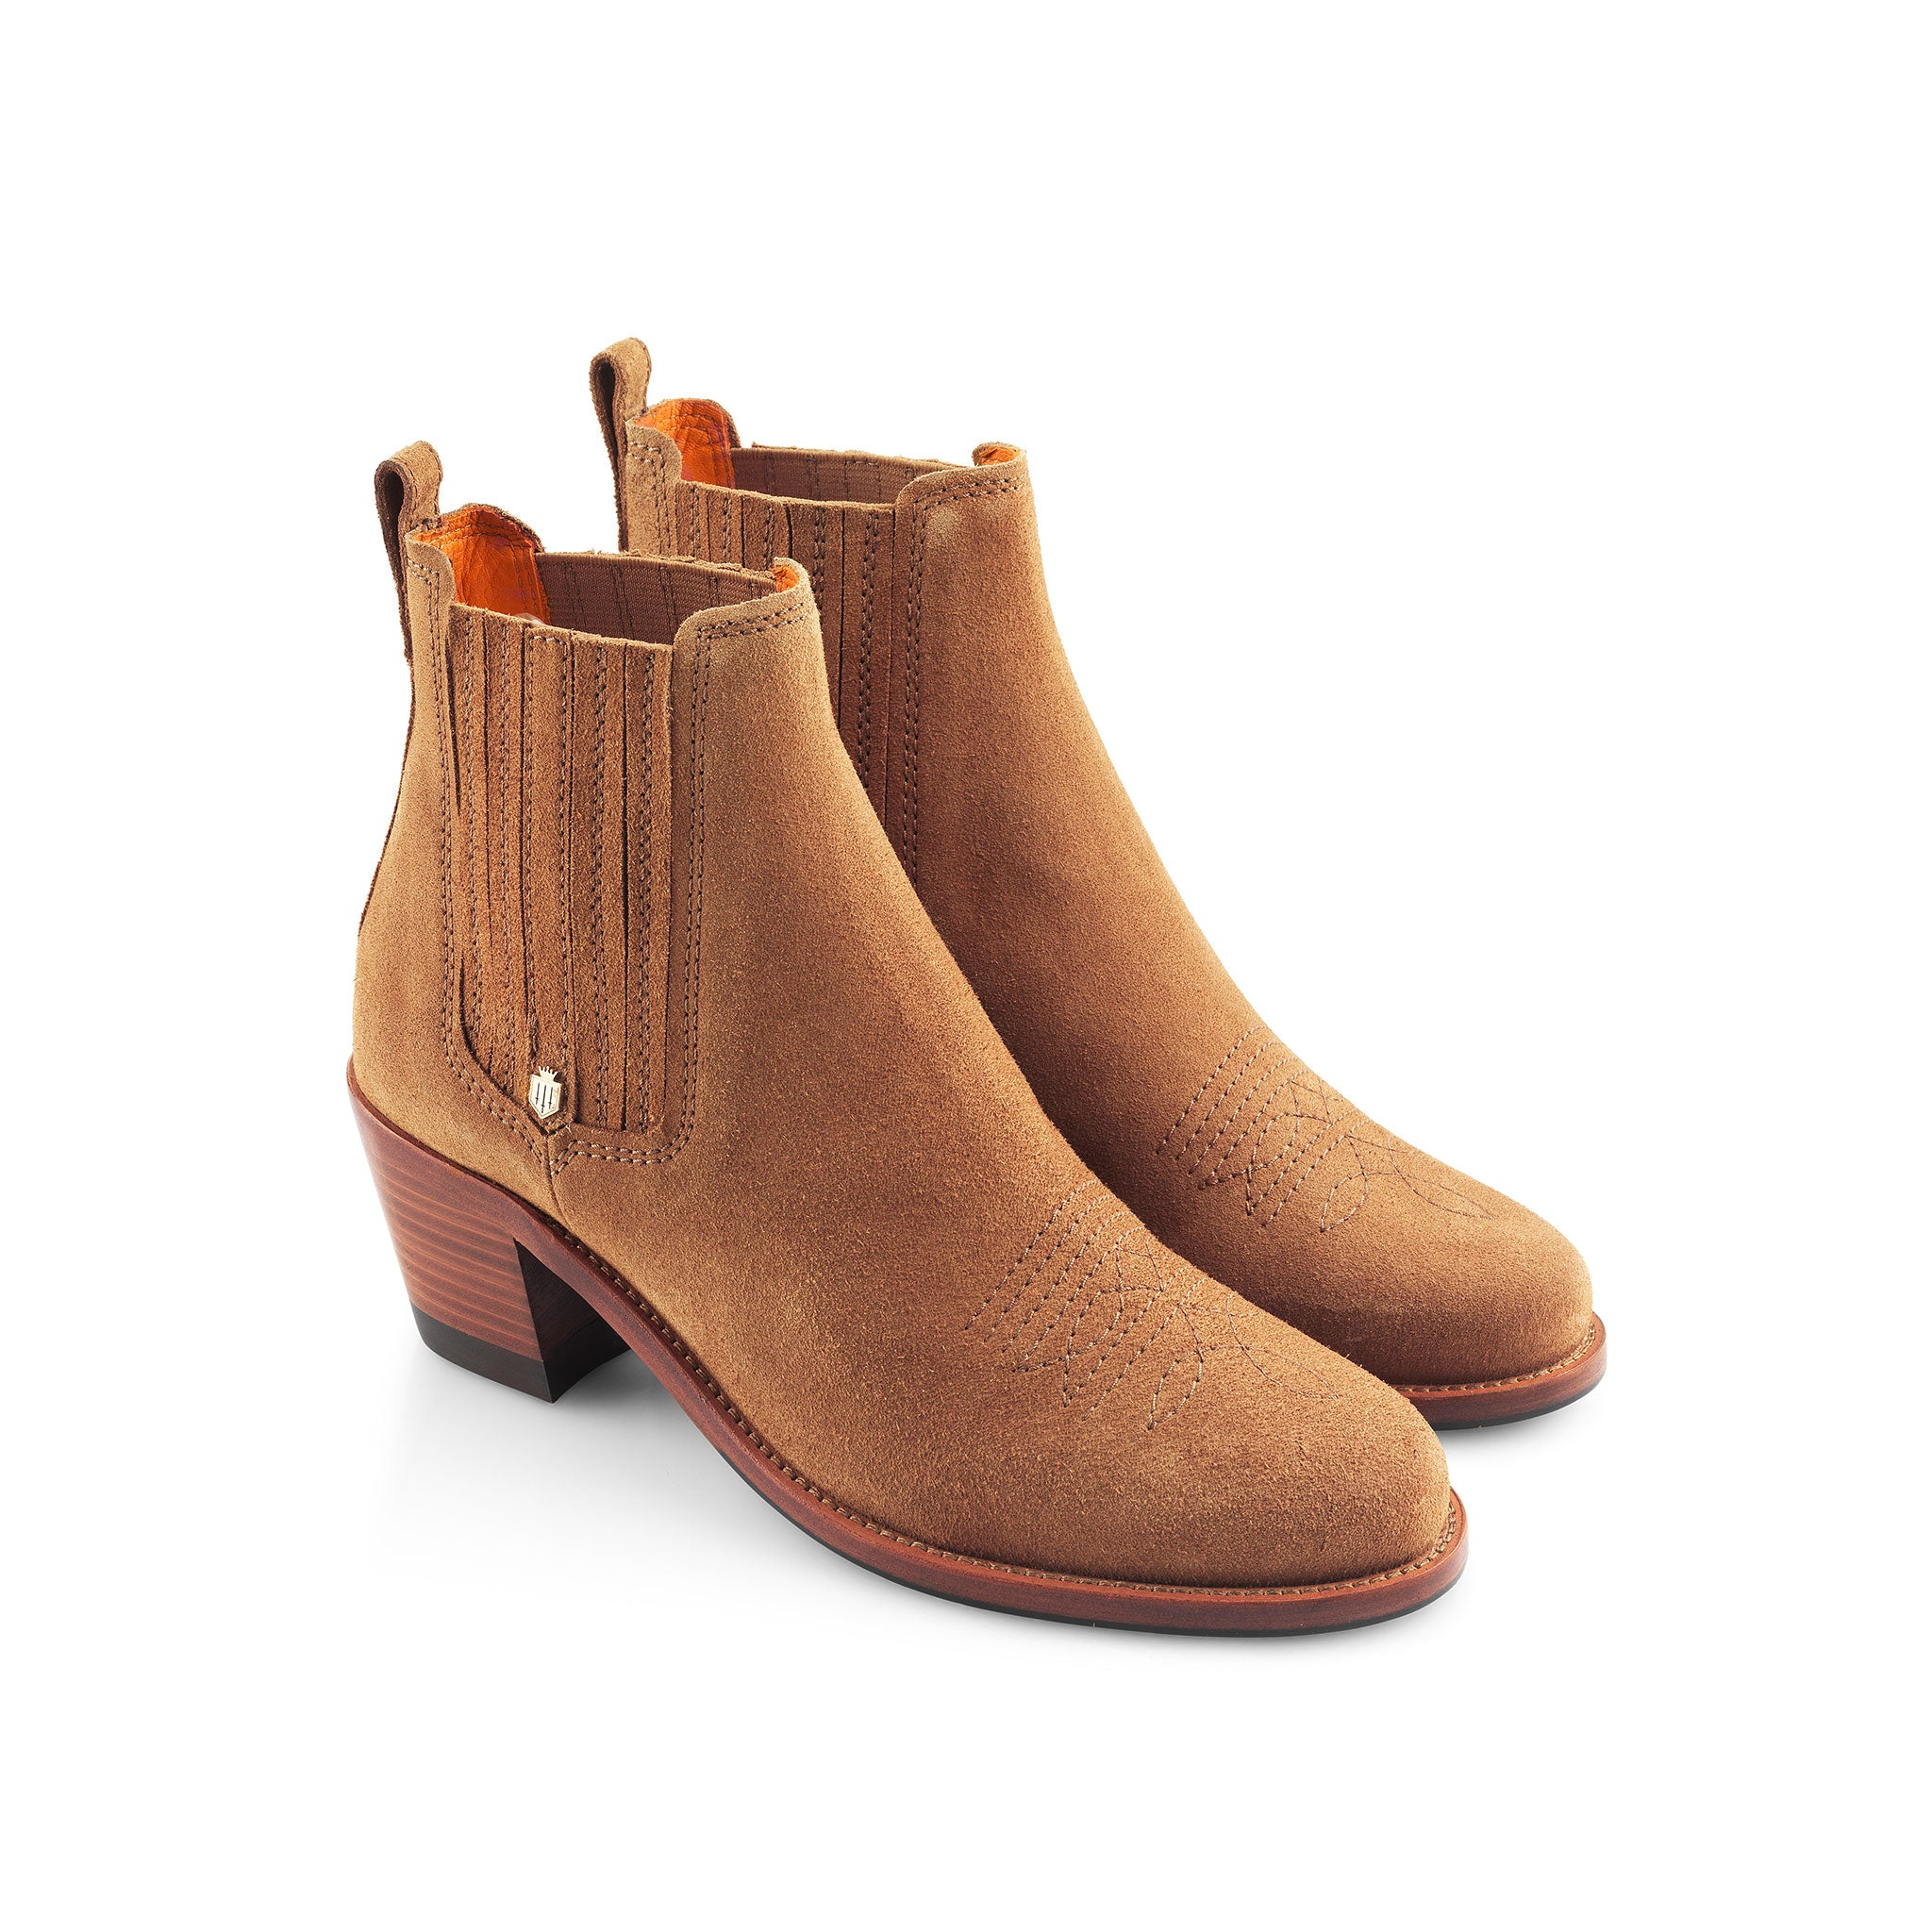 Fairfax and Favor Rockingham Ankle Boots for Ladies in Tan